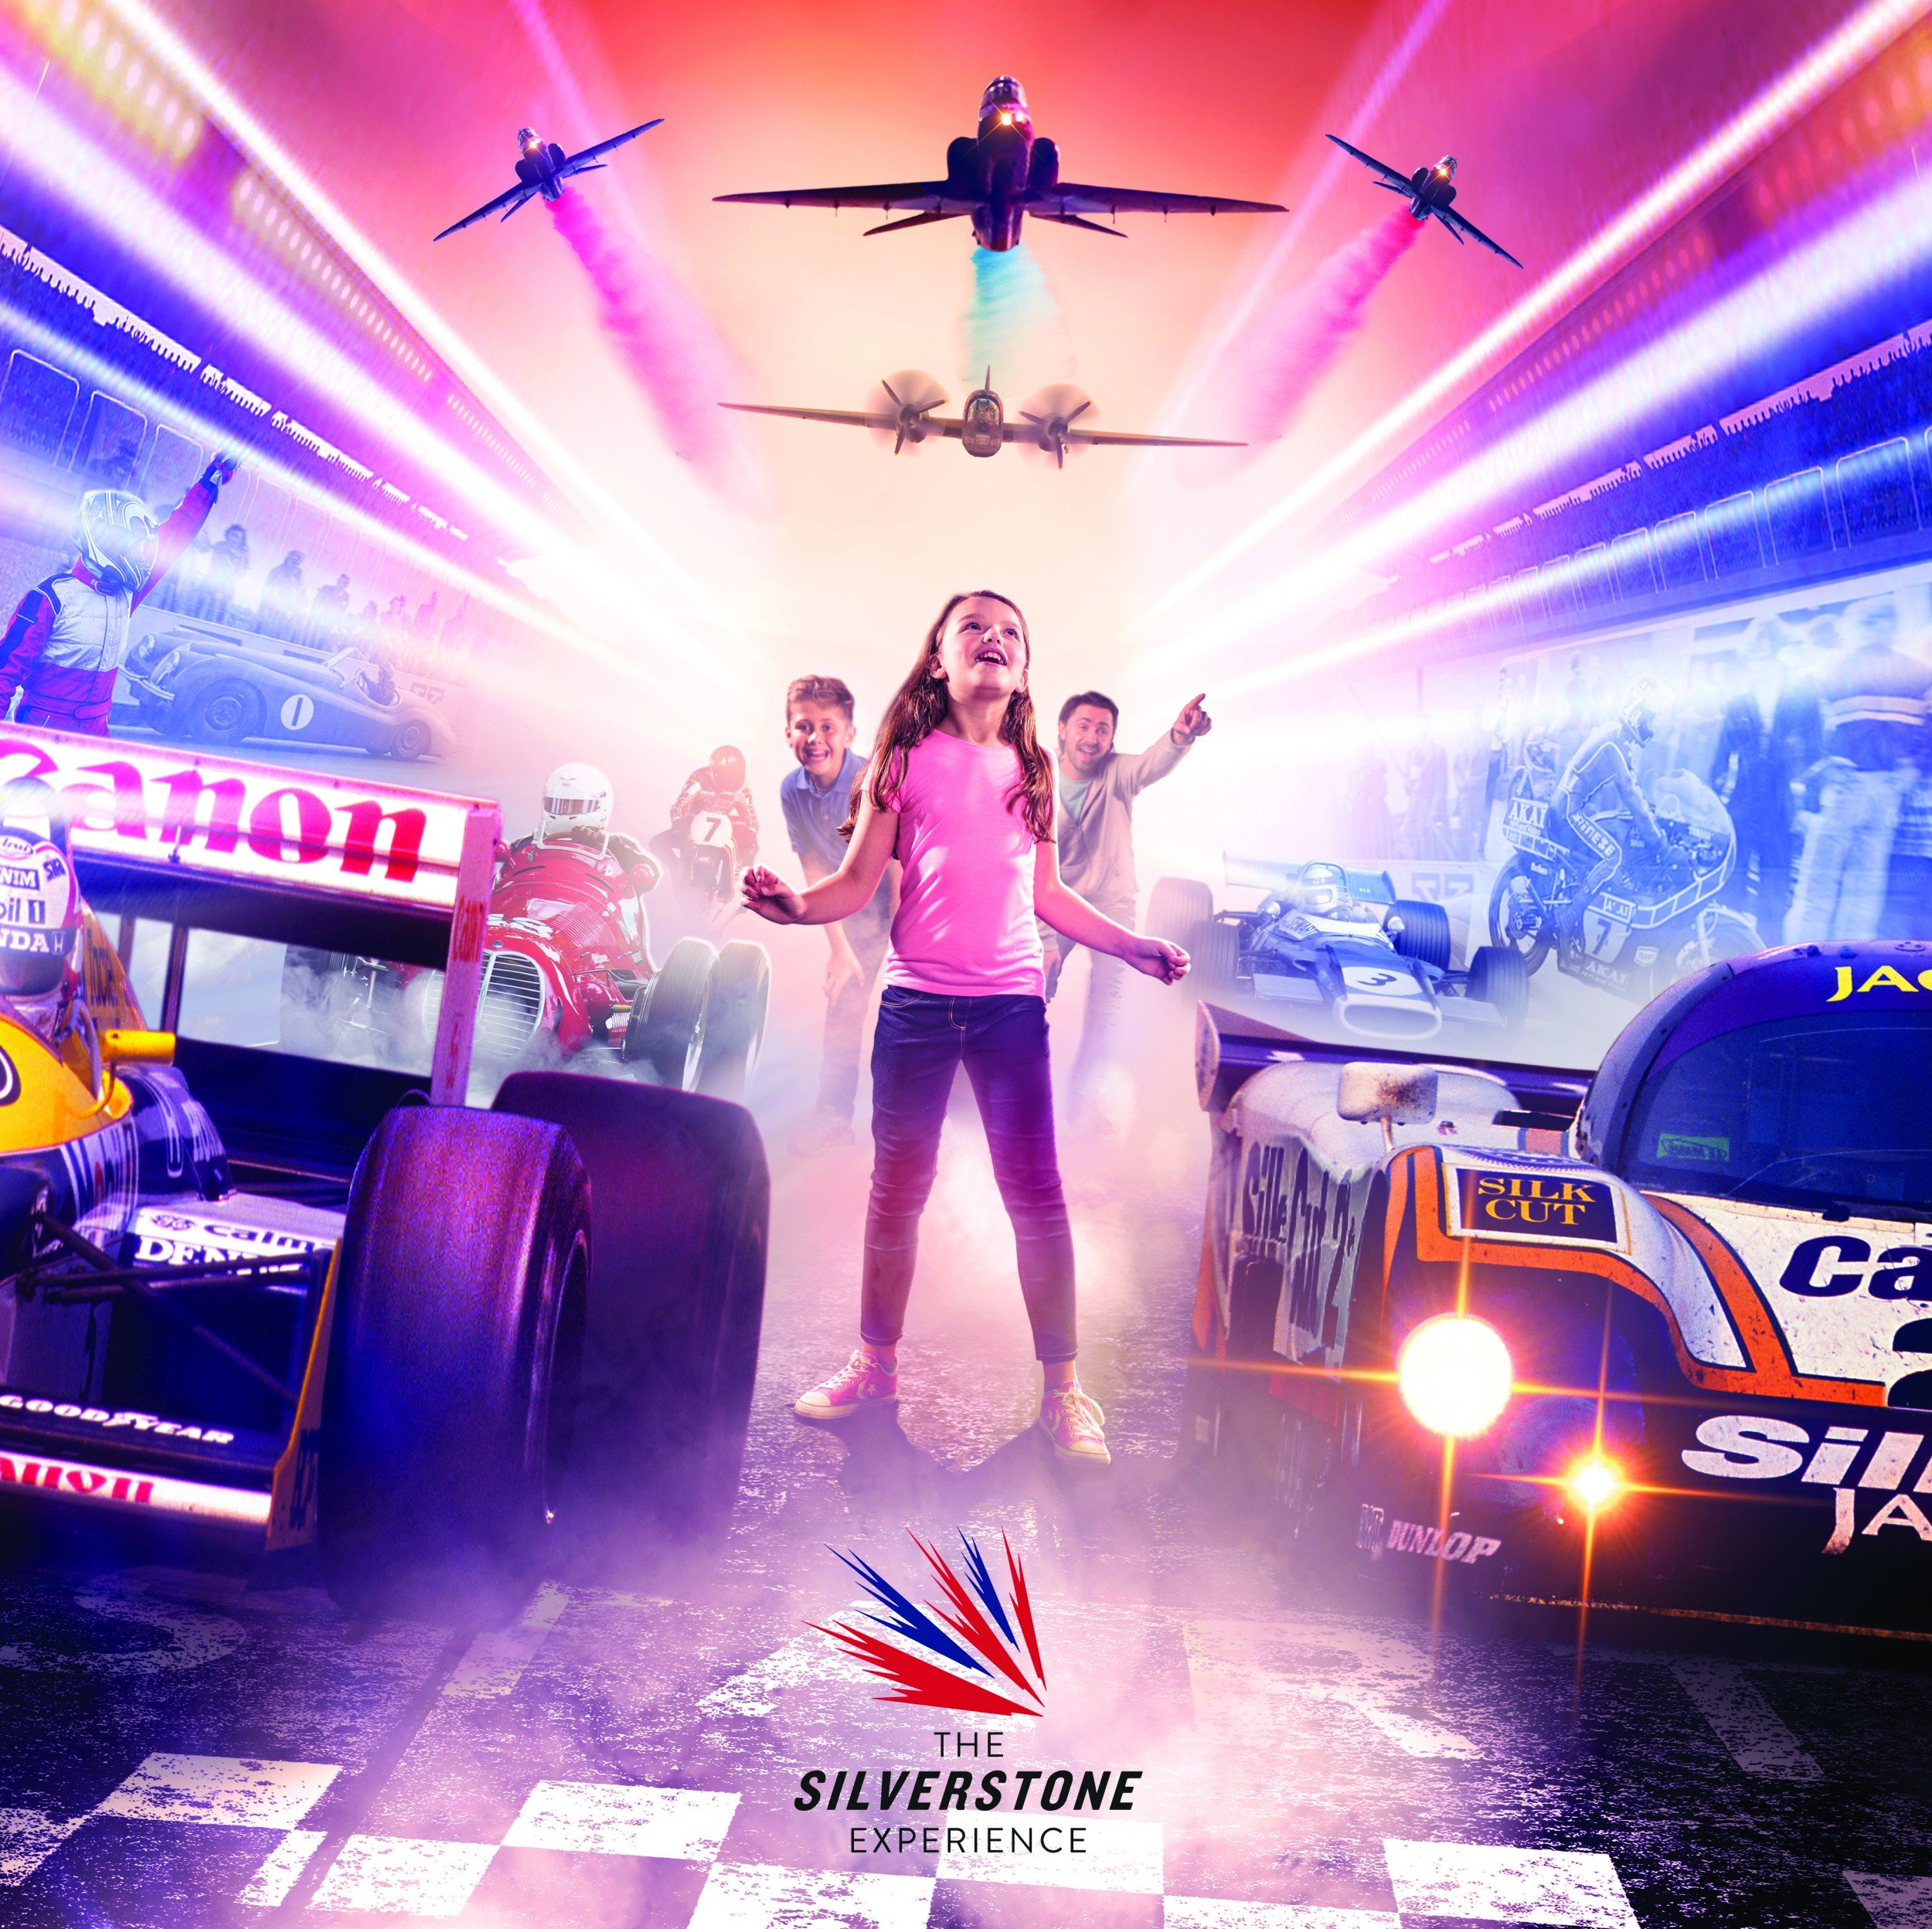 The Silverstone Experience 7